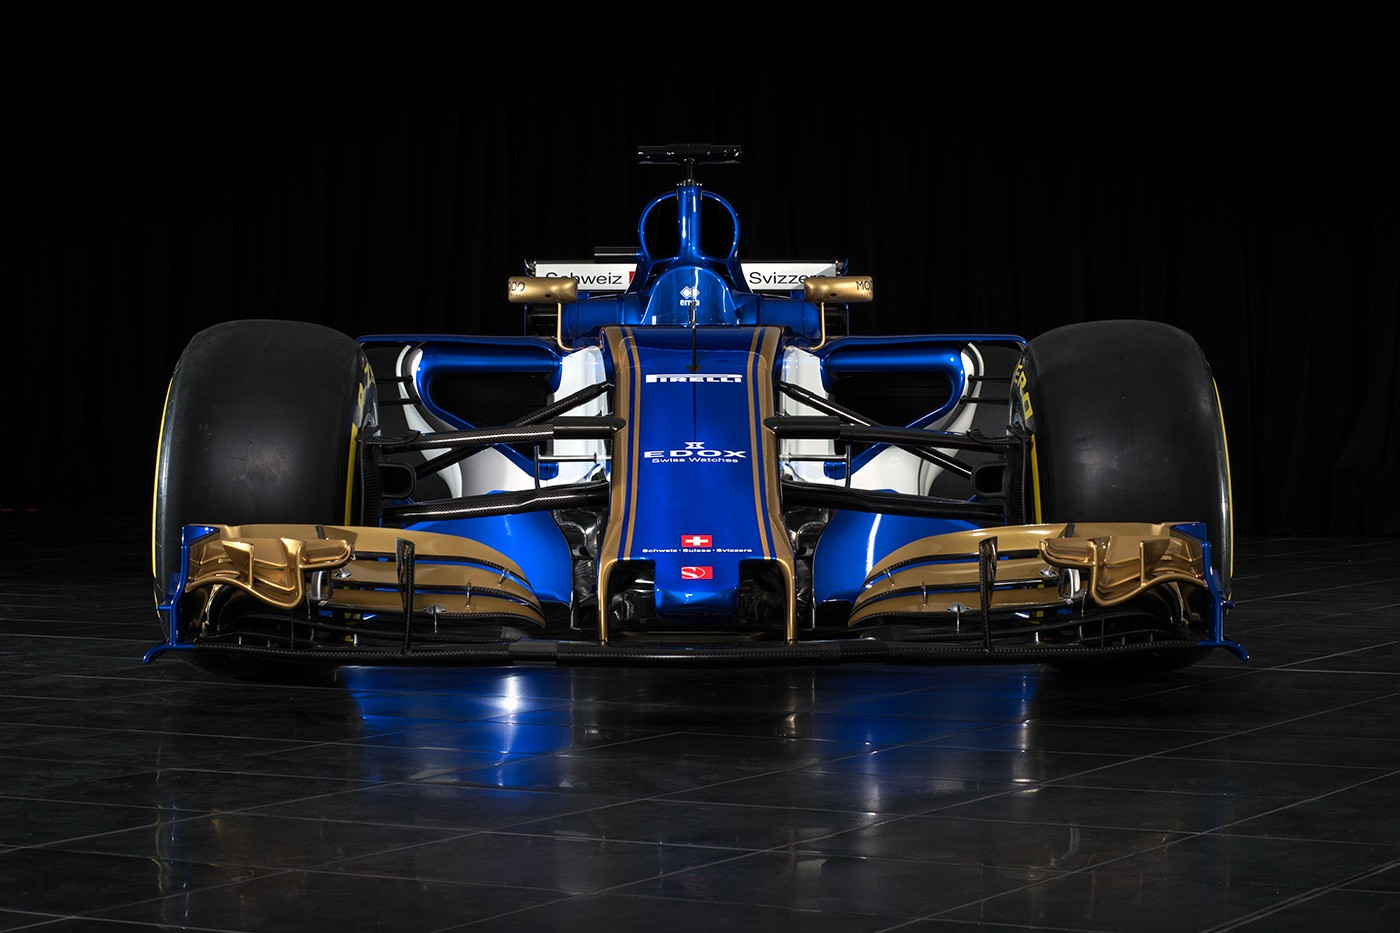 The new Sauber C36-Ferrari bearing the Erreà Sport logo presented!